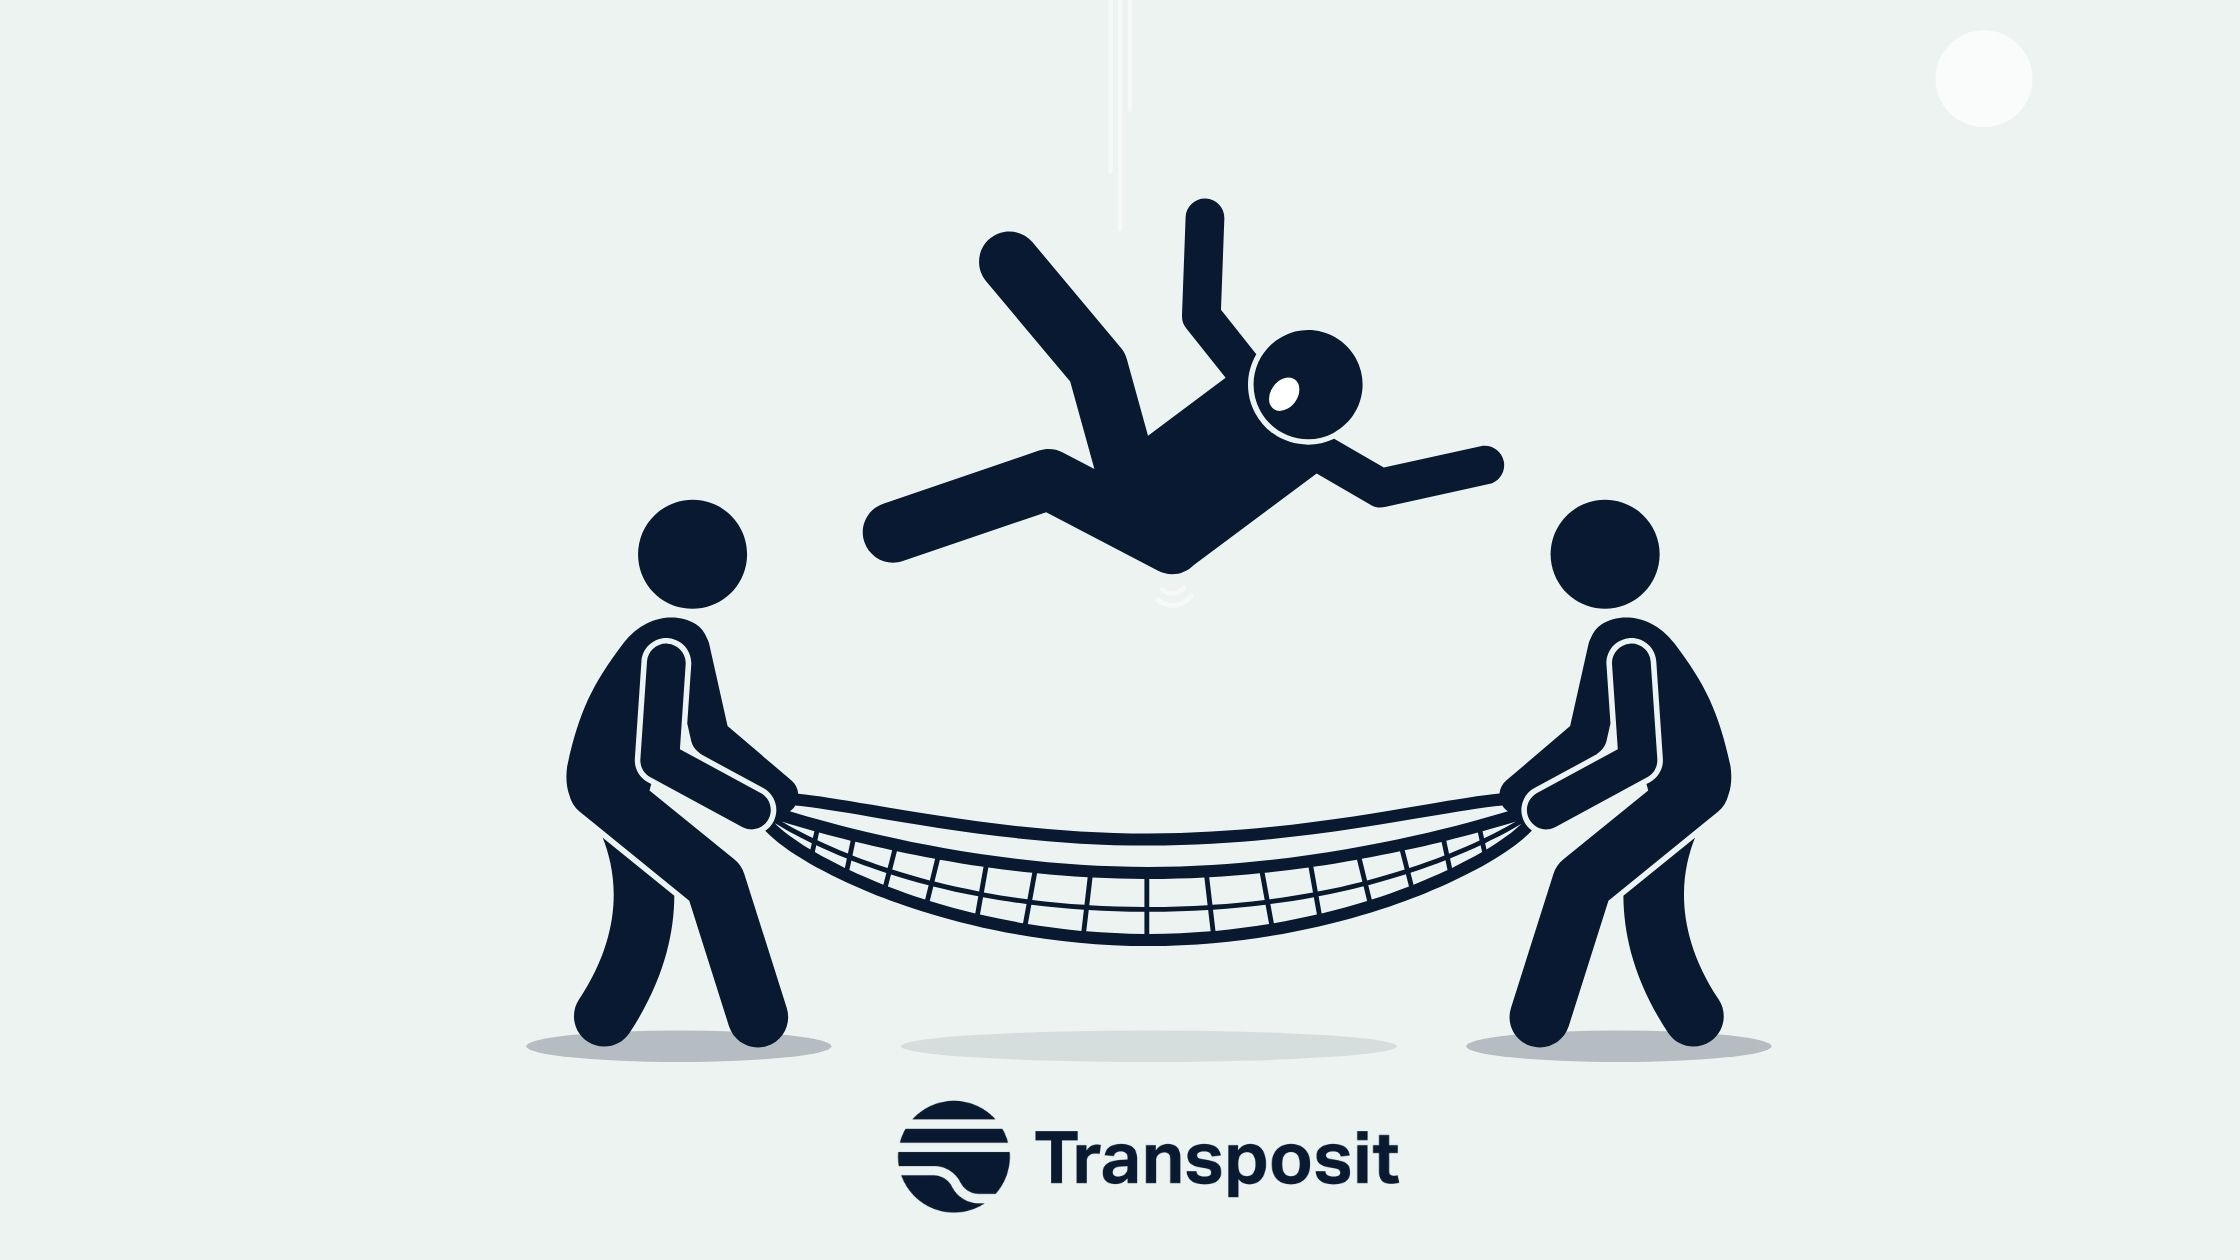 People holding a net catch a person who is falling and Transposit logo under the net